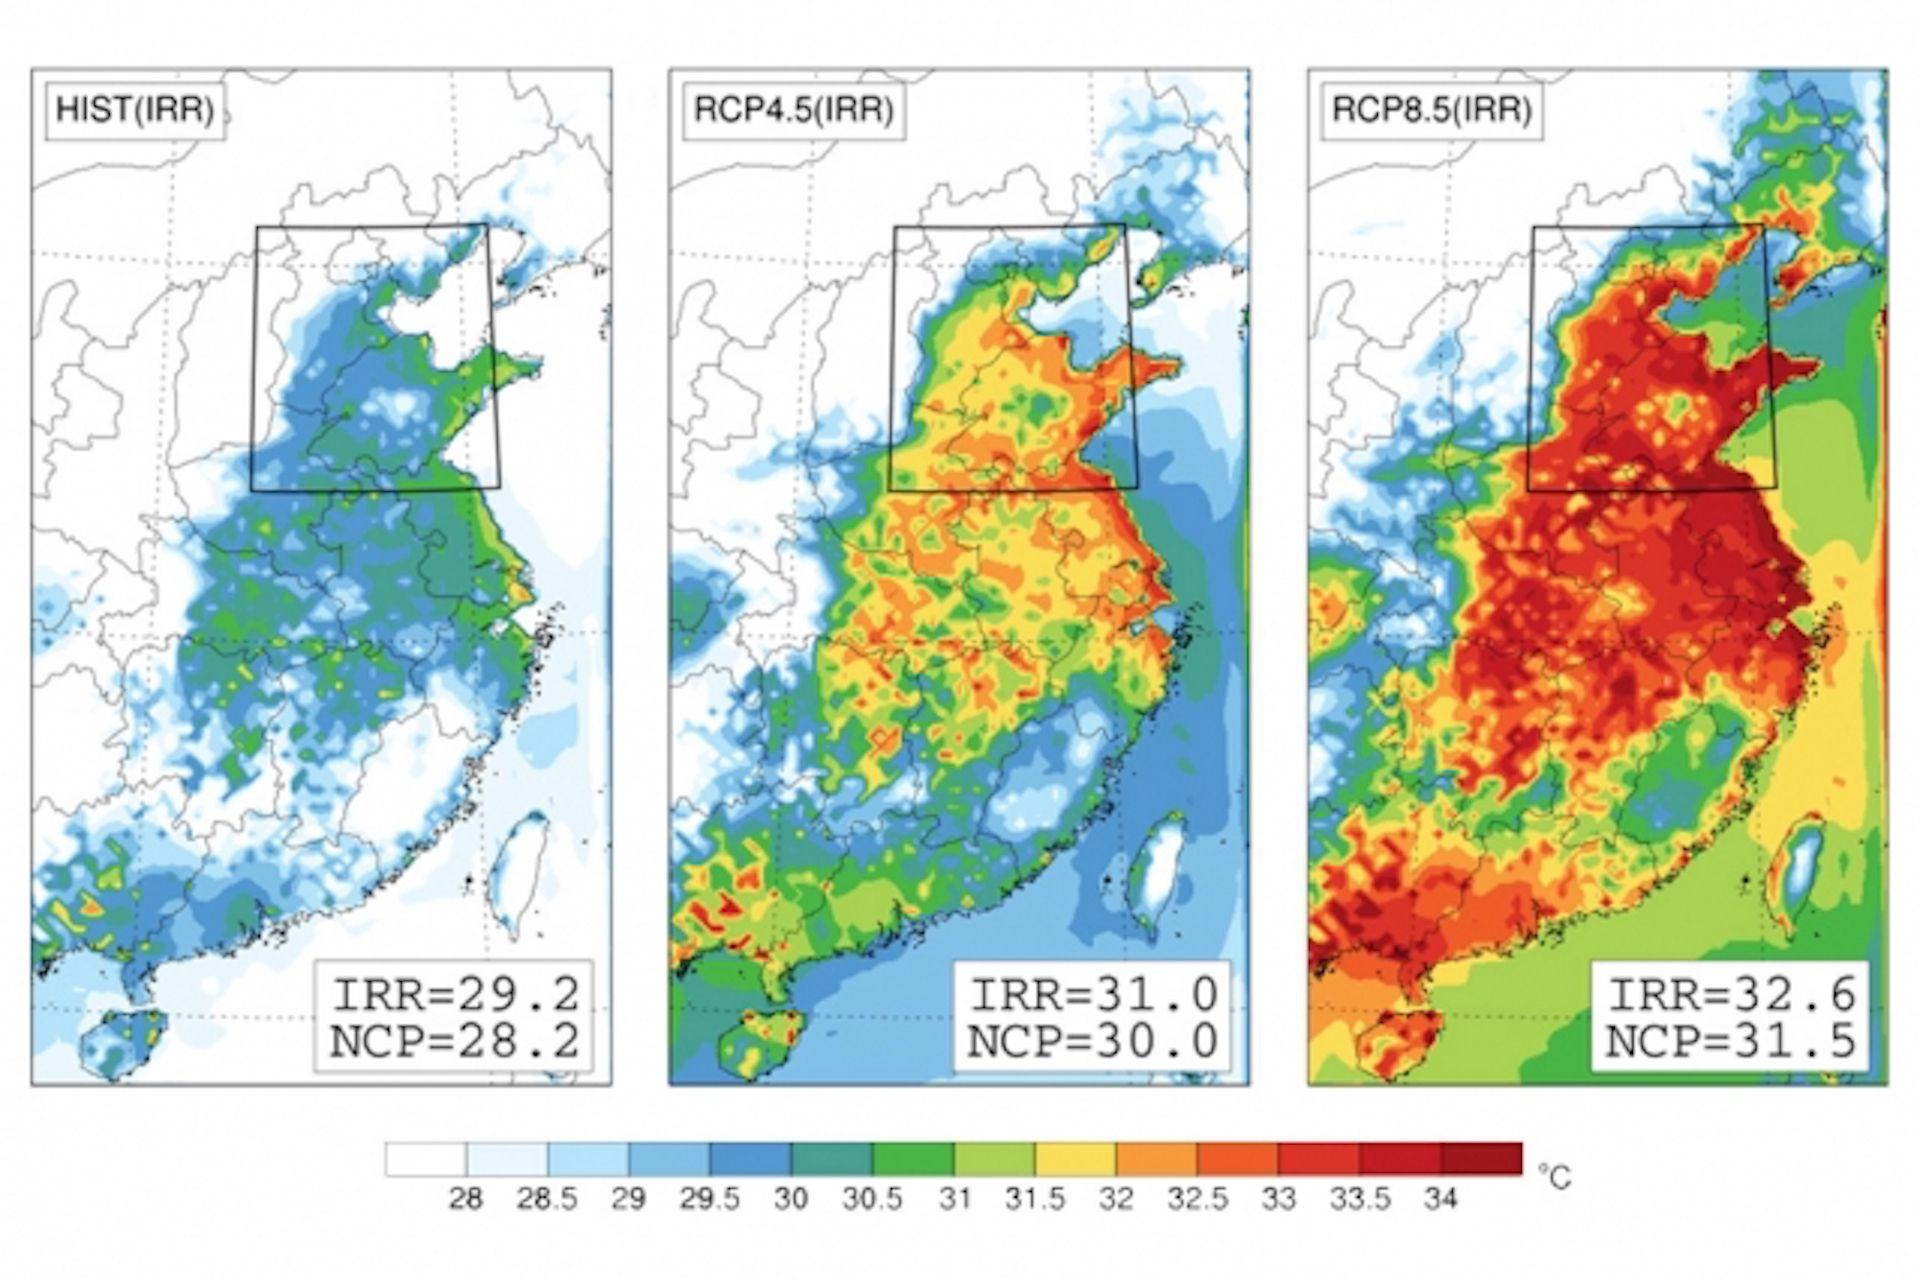 Computer model map projections for heat waves under global warming scenarios in the North China Plain.